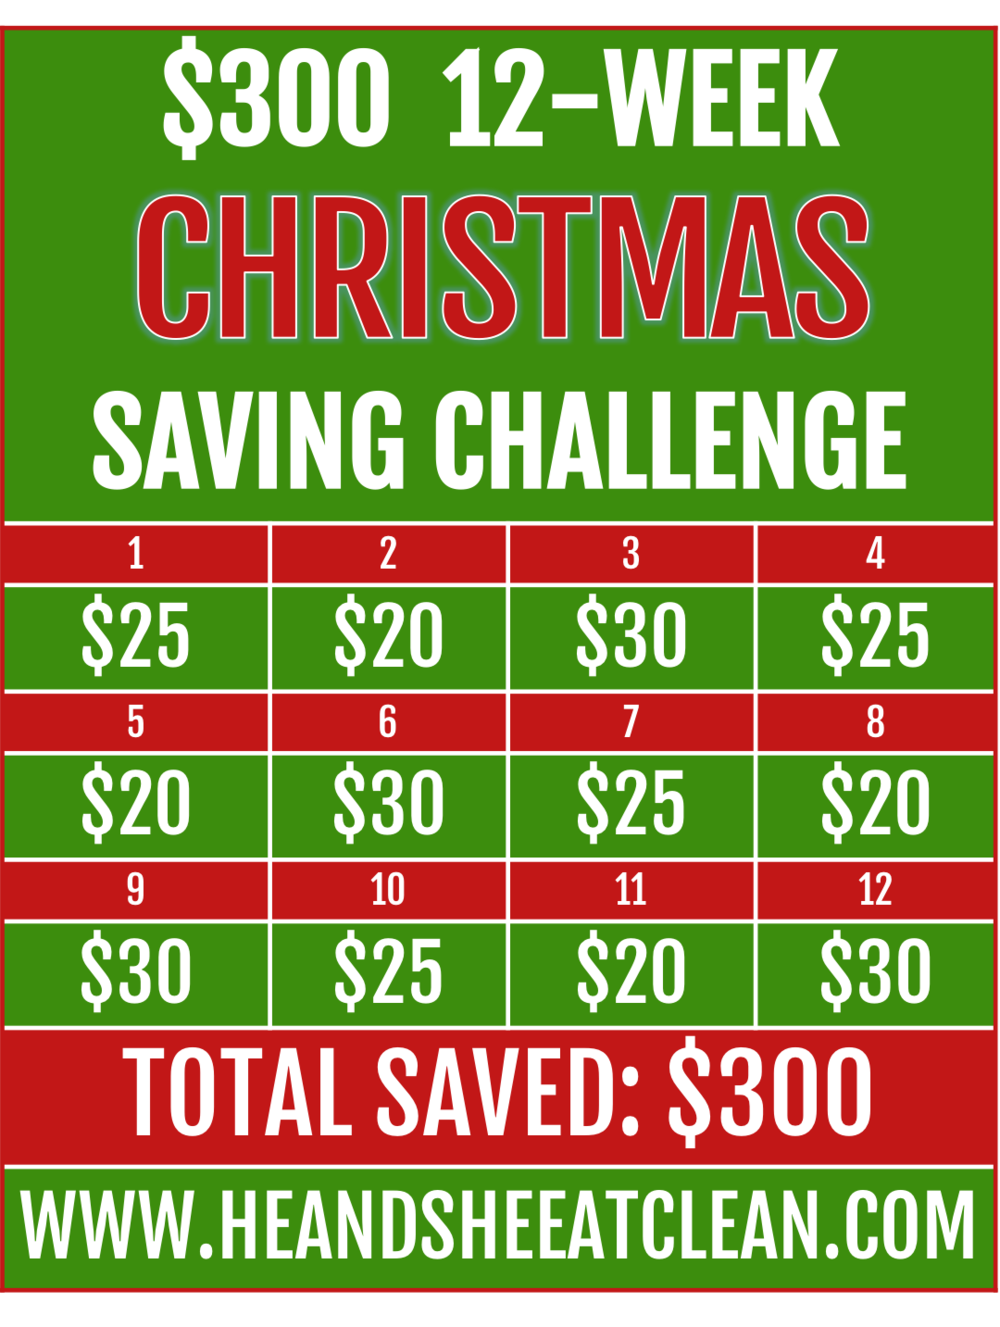 $300 12-Week Christmas Saving Challenge | He and She Eat Clean